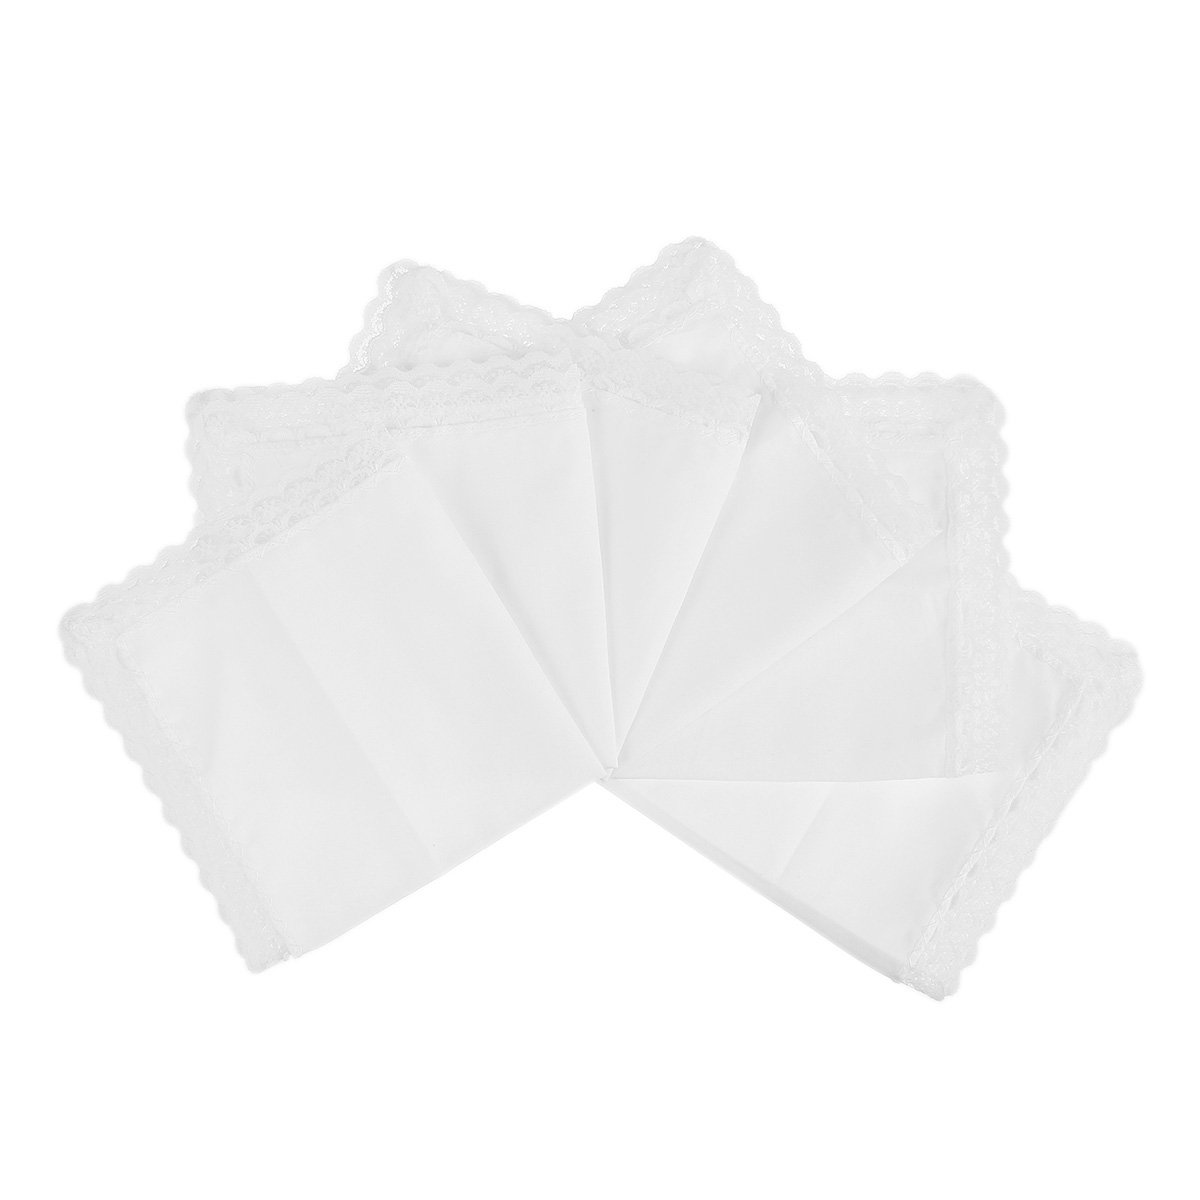 Houlife Ladies Soft Pure White 100% Cotton Lace Wedding Handkerchiefs 6 Pieces